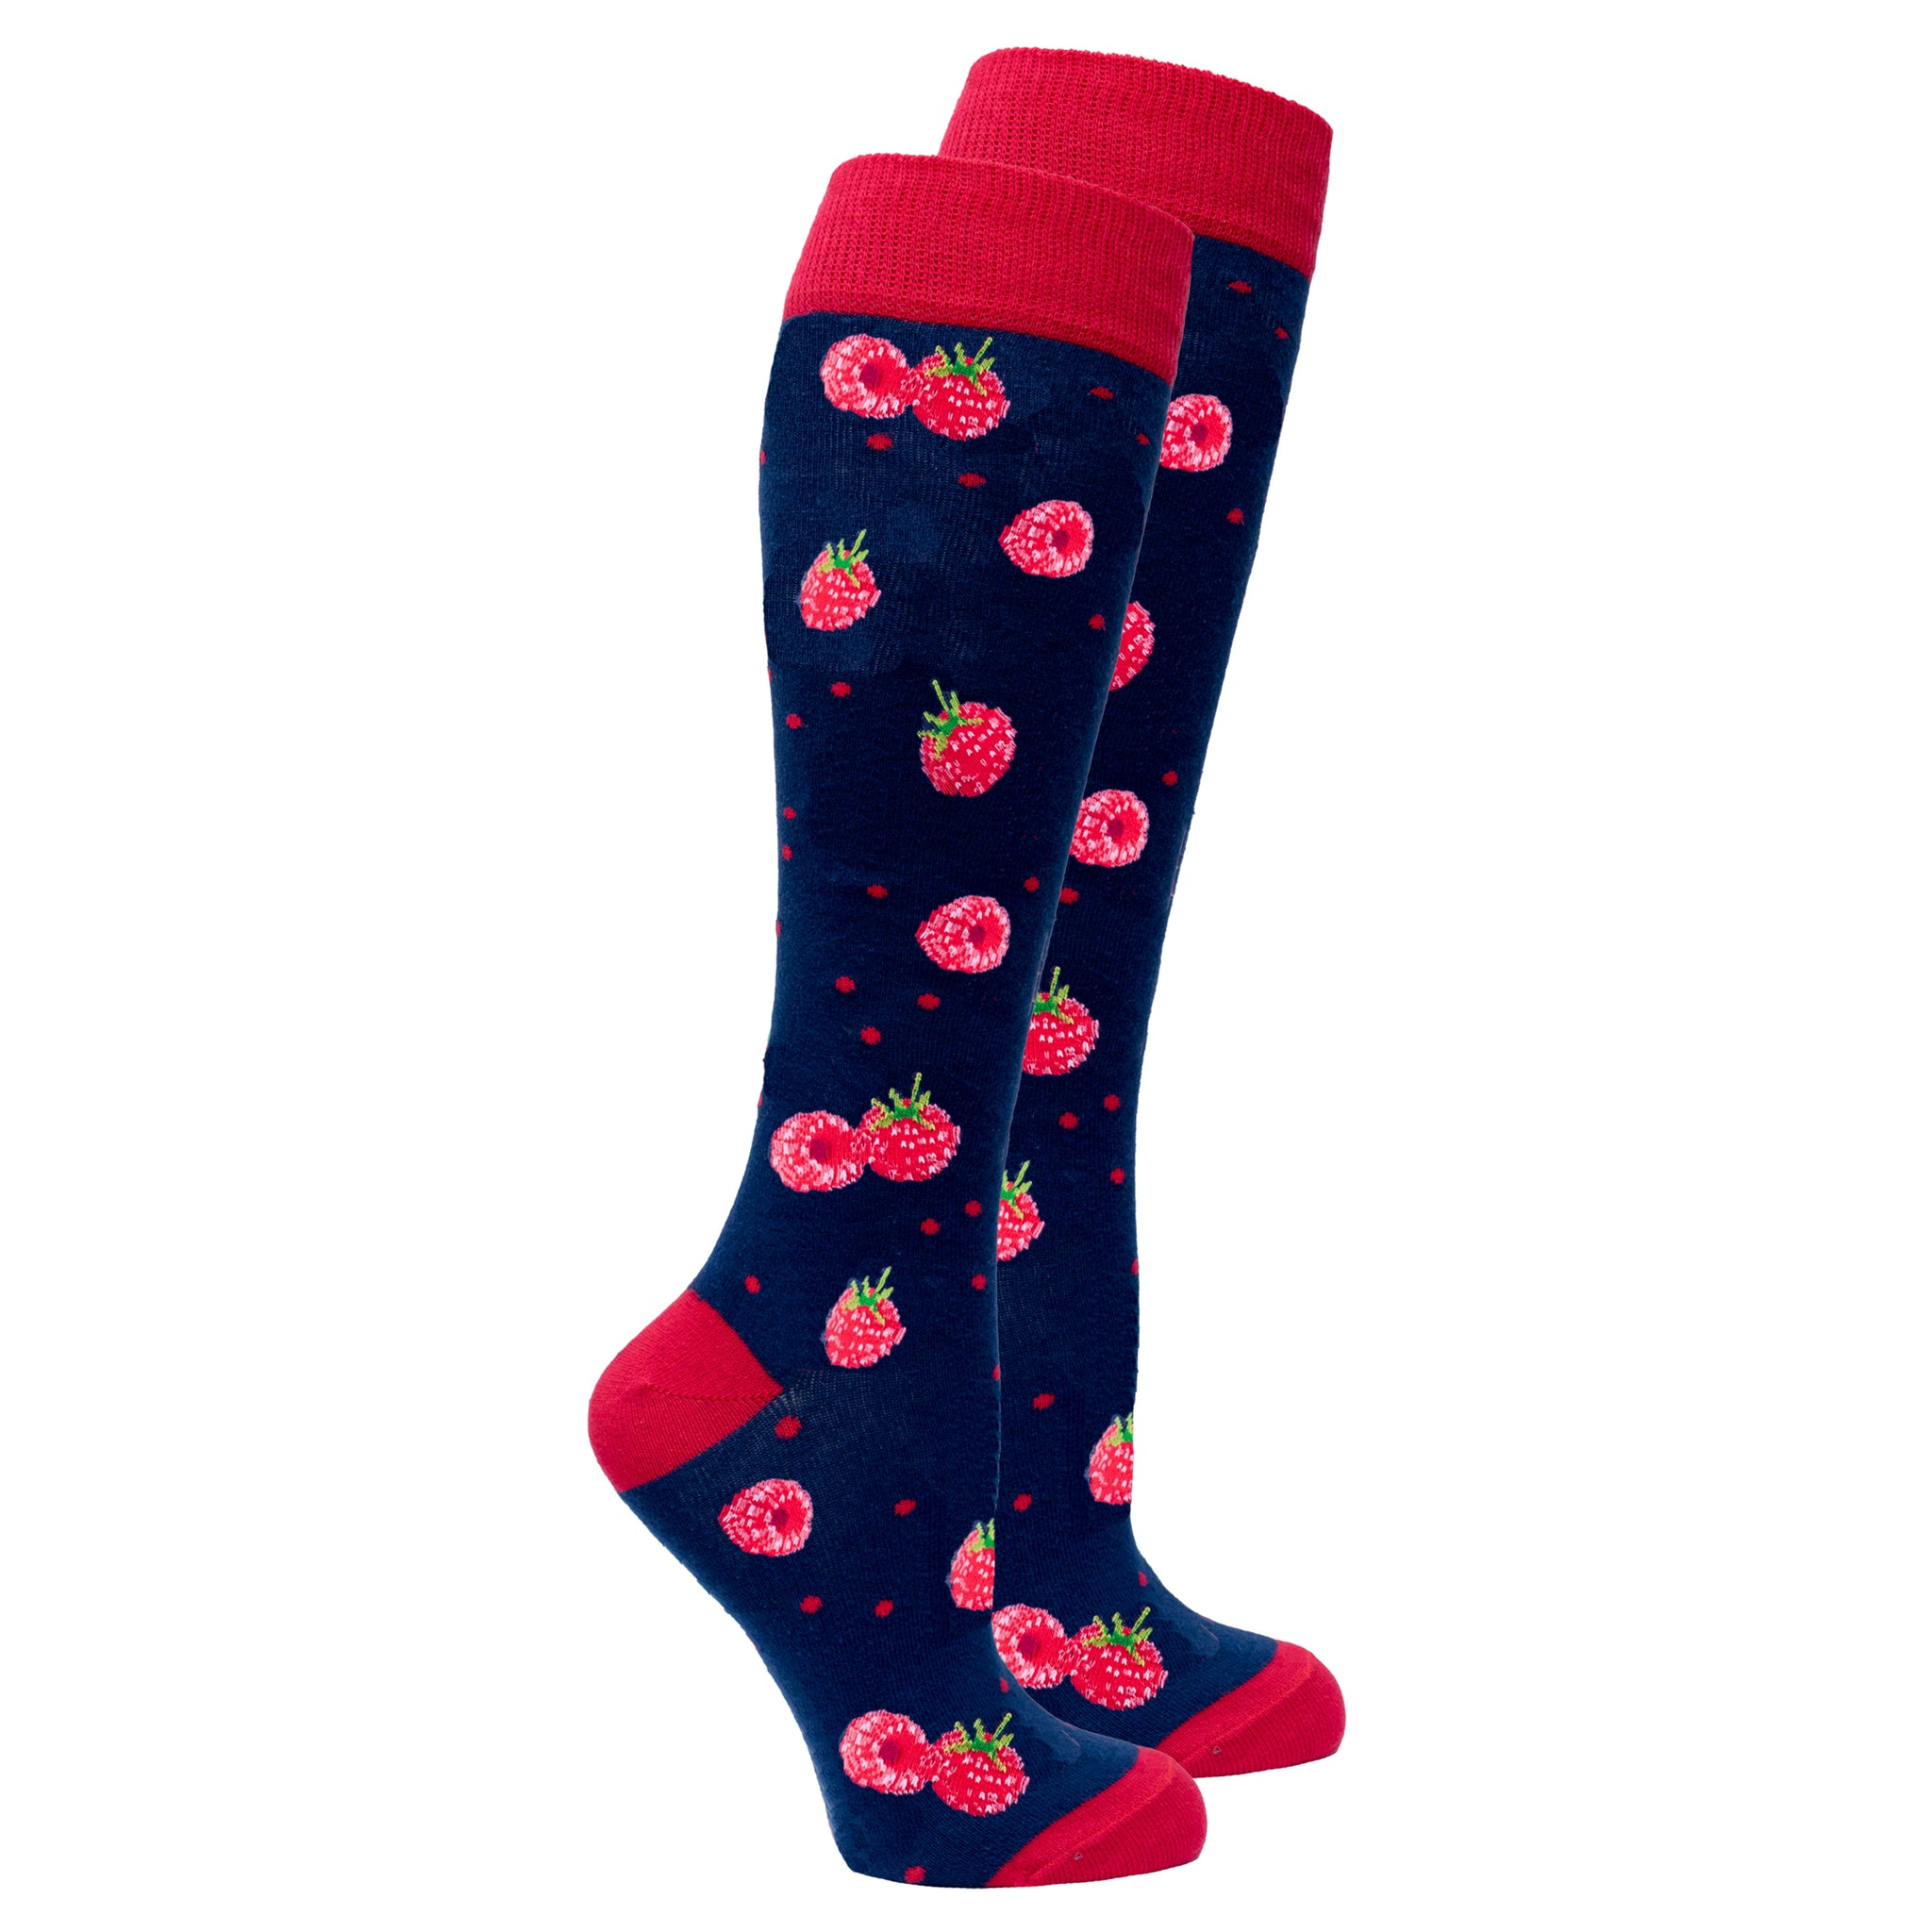 Women's Raspberry Knee High Socks